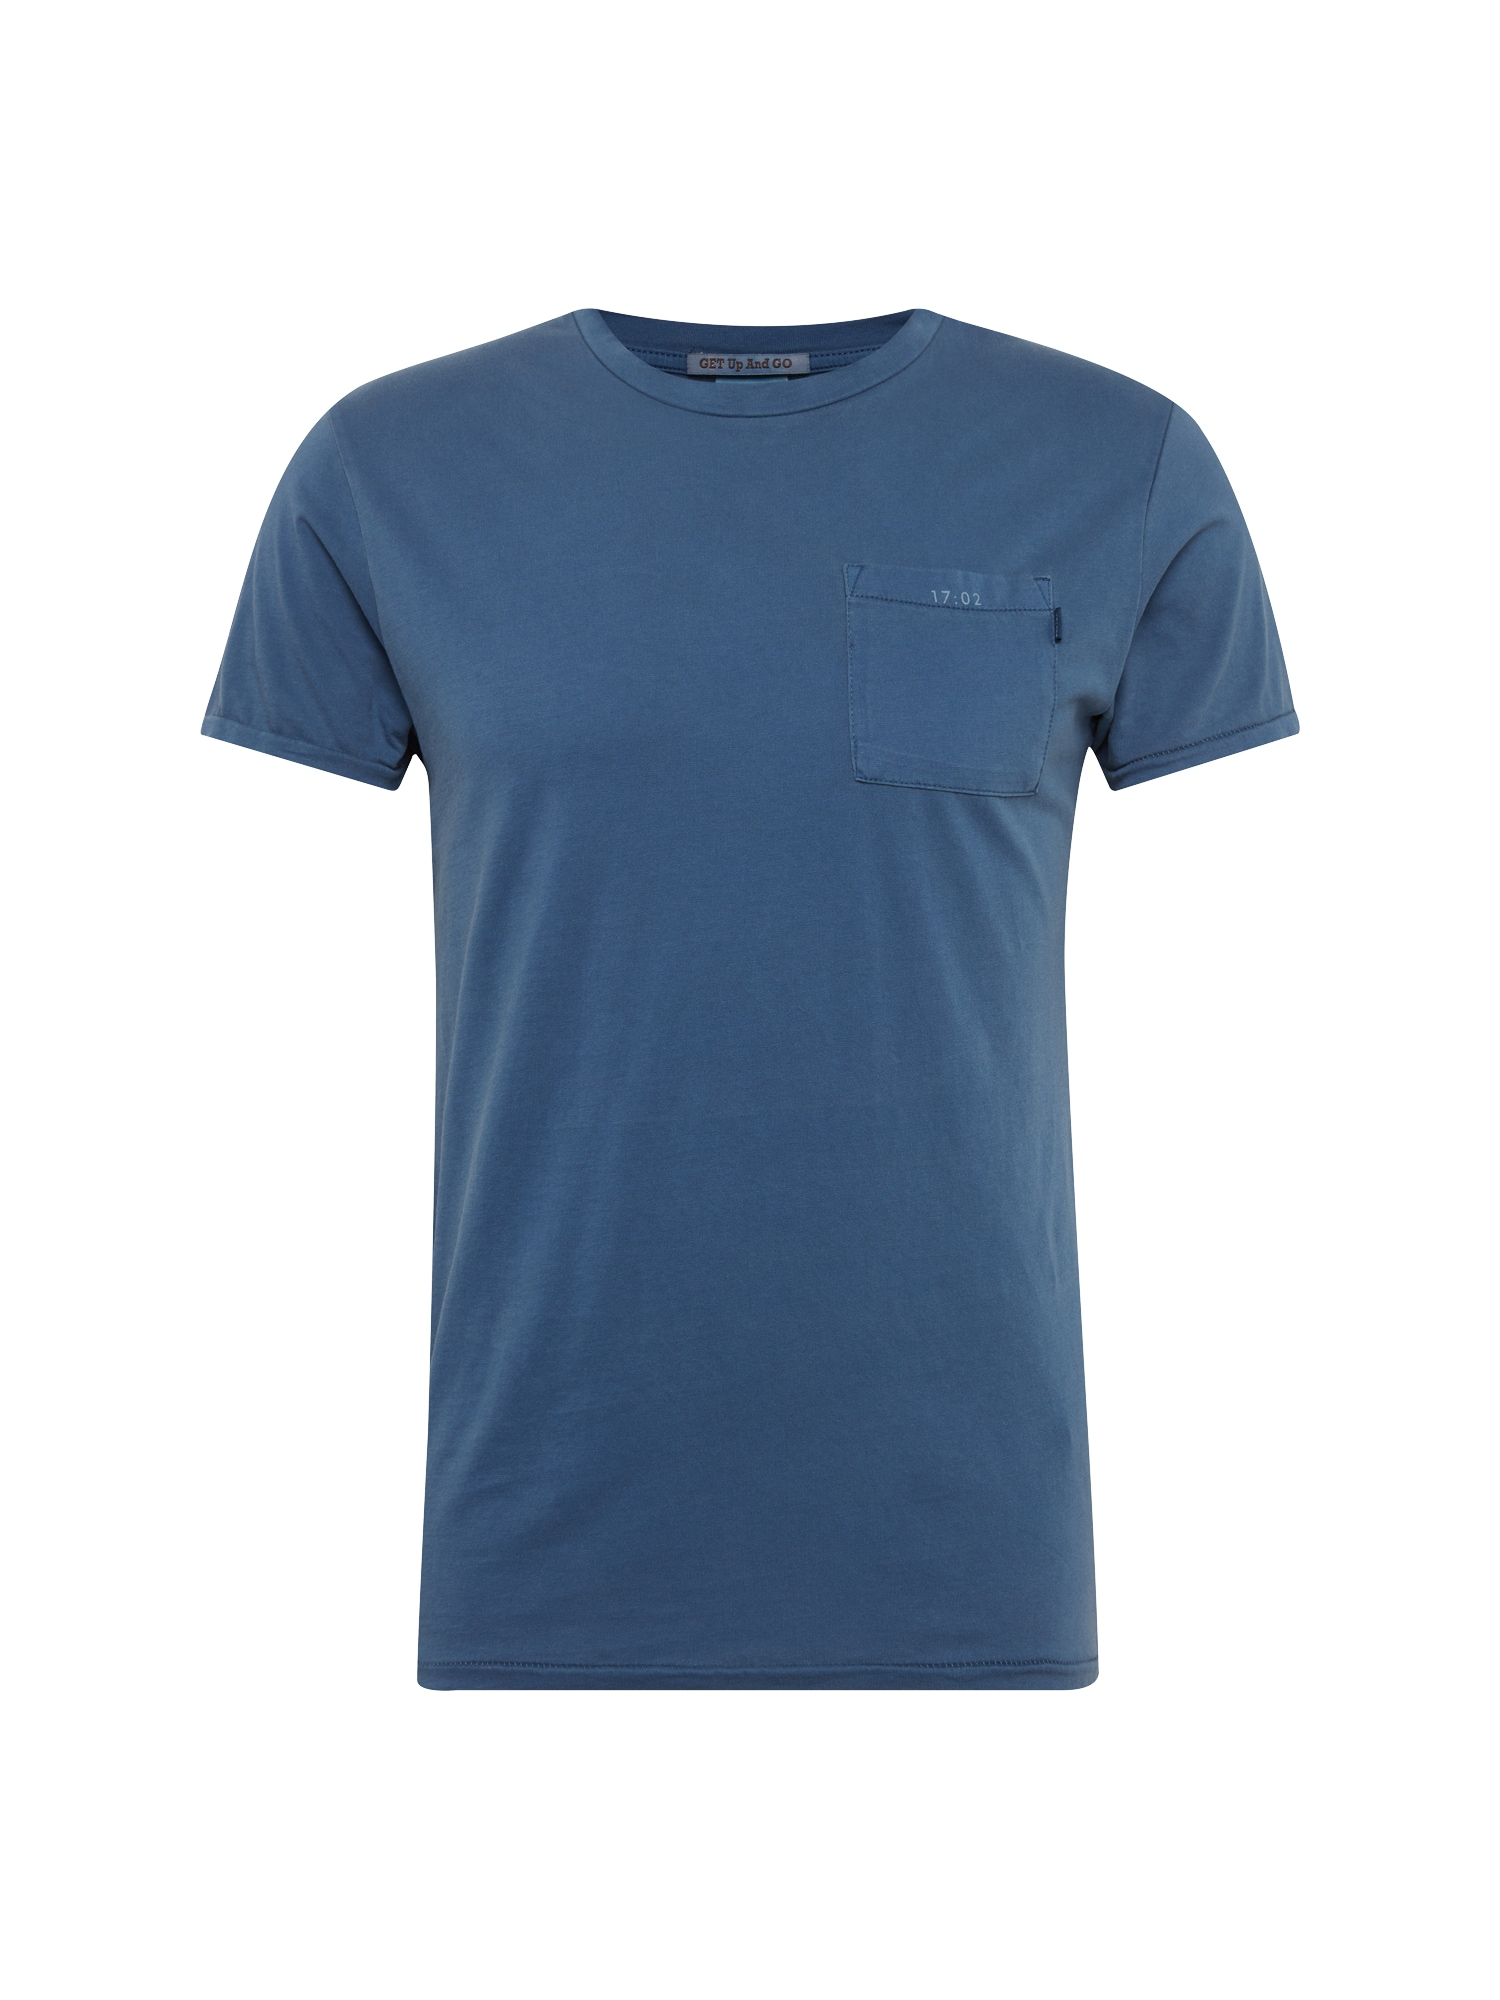 SCOTCH  and  SODA Heren Shirt Garment-dyed tee with chest pocket blauw